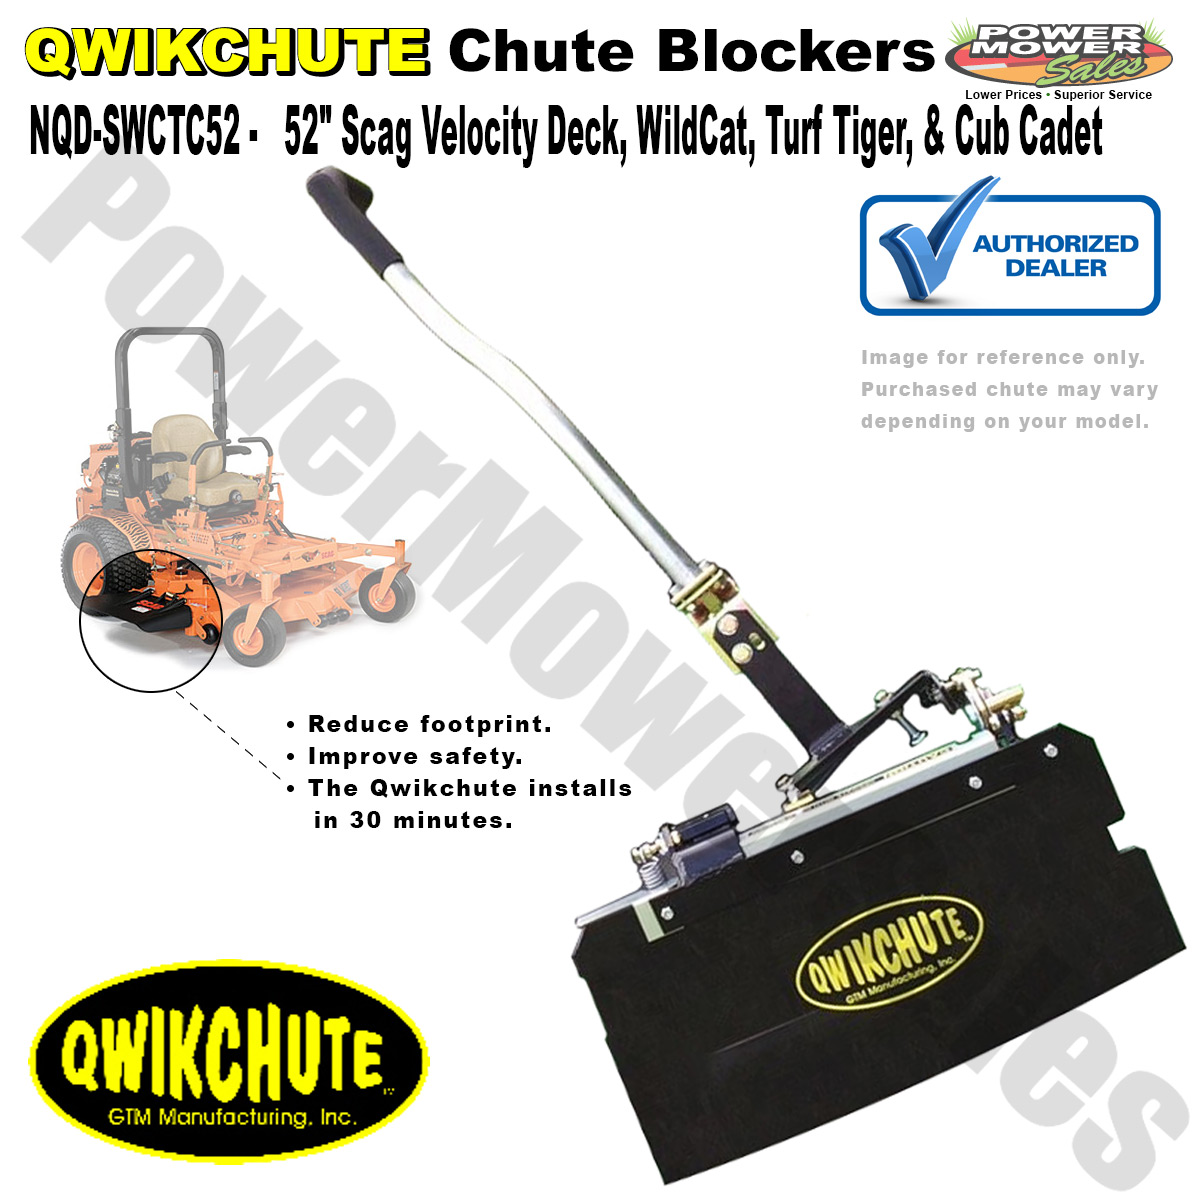 Qwikchute Chute Blocker Deflector For Scag 52 Inch Decks